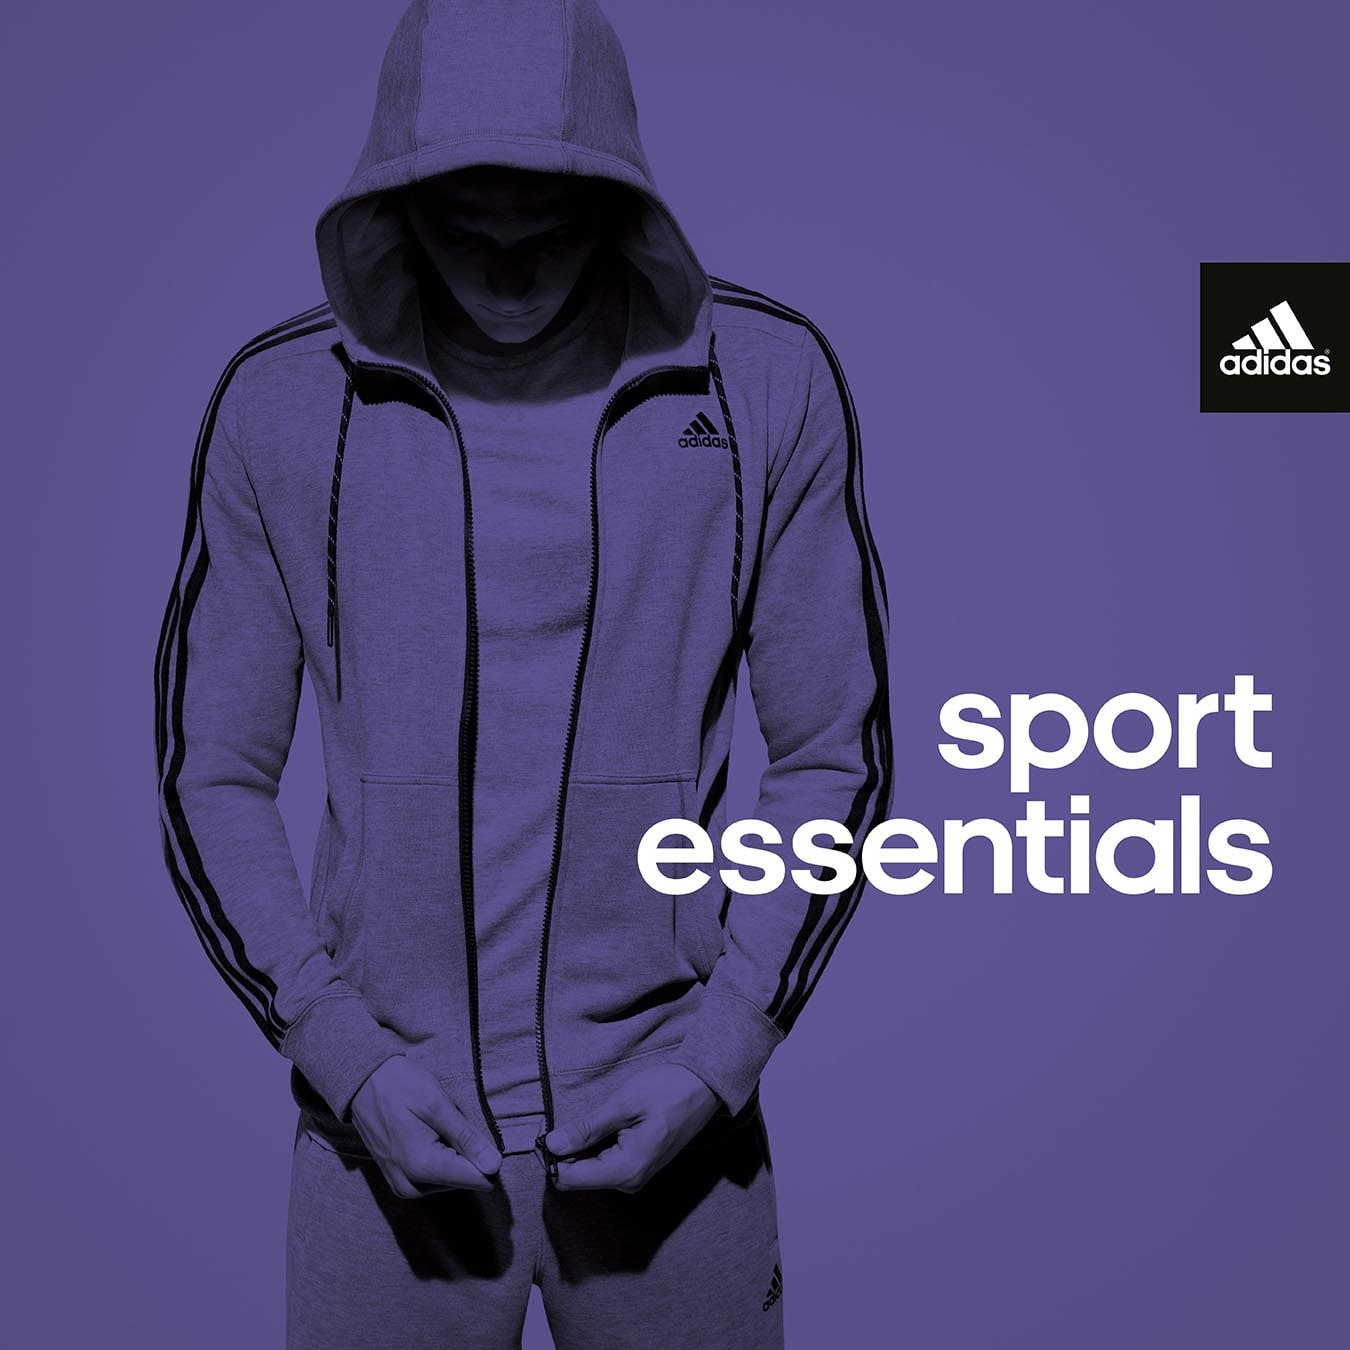 adidas_sport_essentials